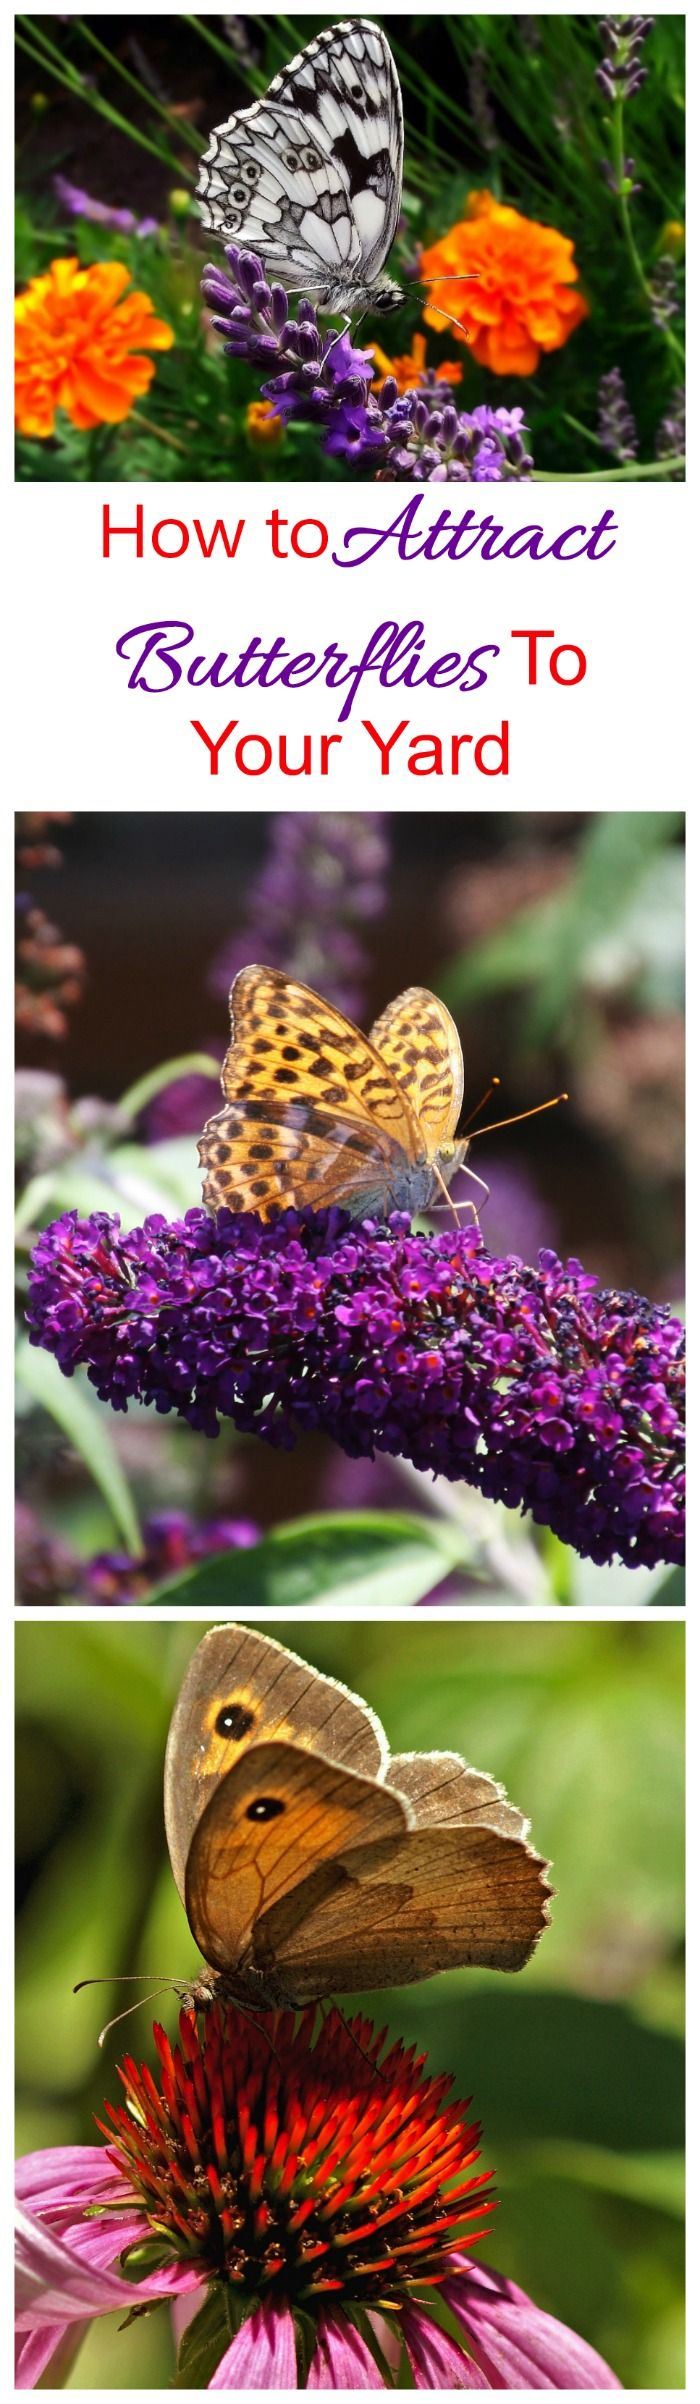 Attracting Butterflies   Tips To Attract Butterflies To Your Yard Like A  Magnet